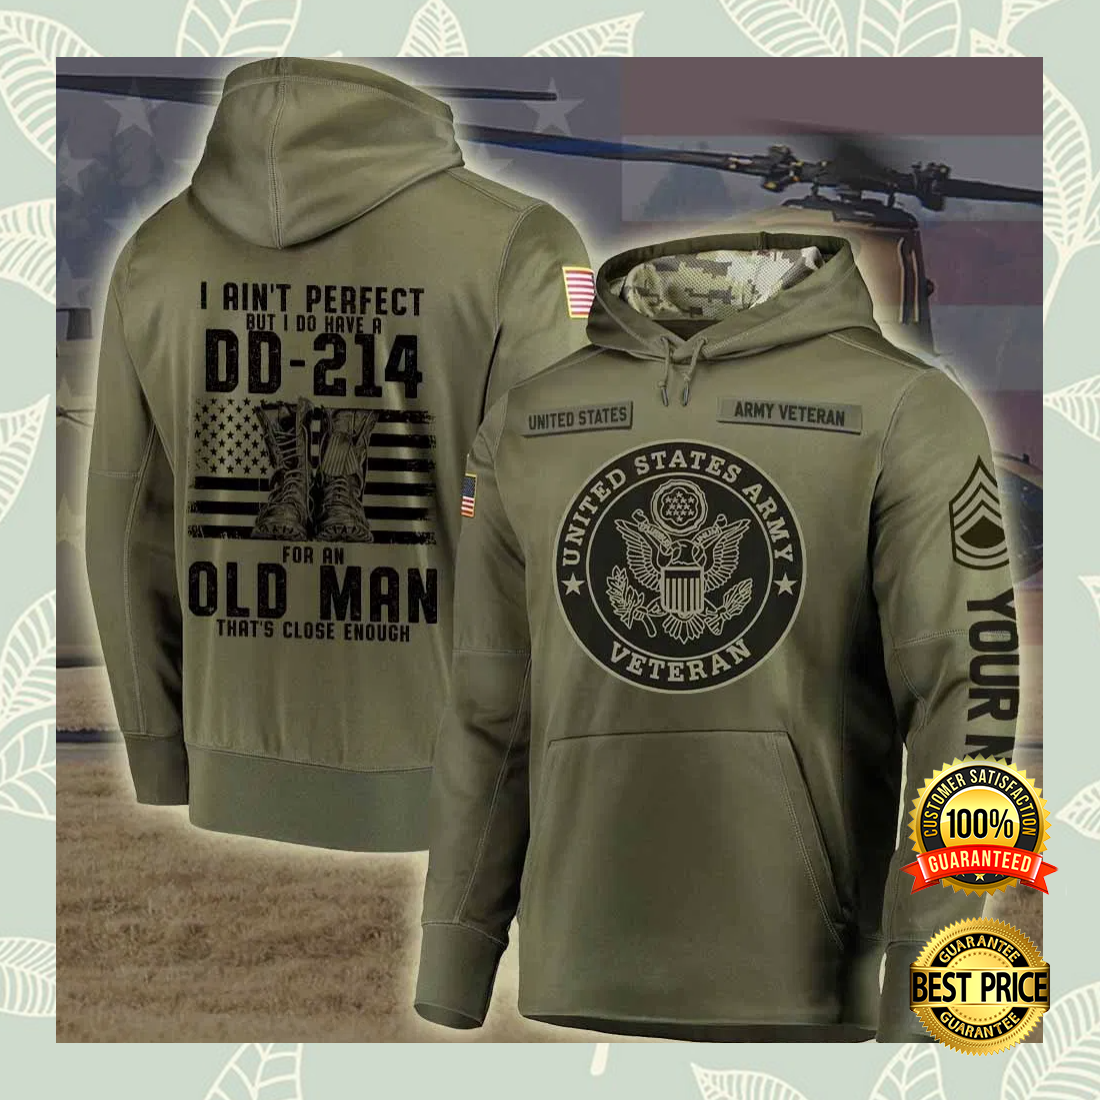 Personalized US Army i ain't perfect but i do have a dd 214 for an old man all over printed 3D hoodie 7